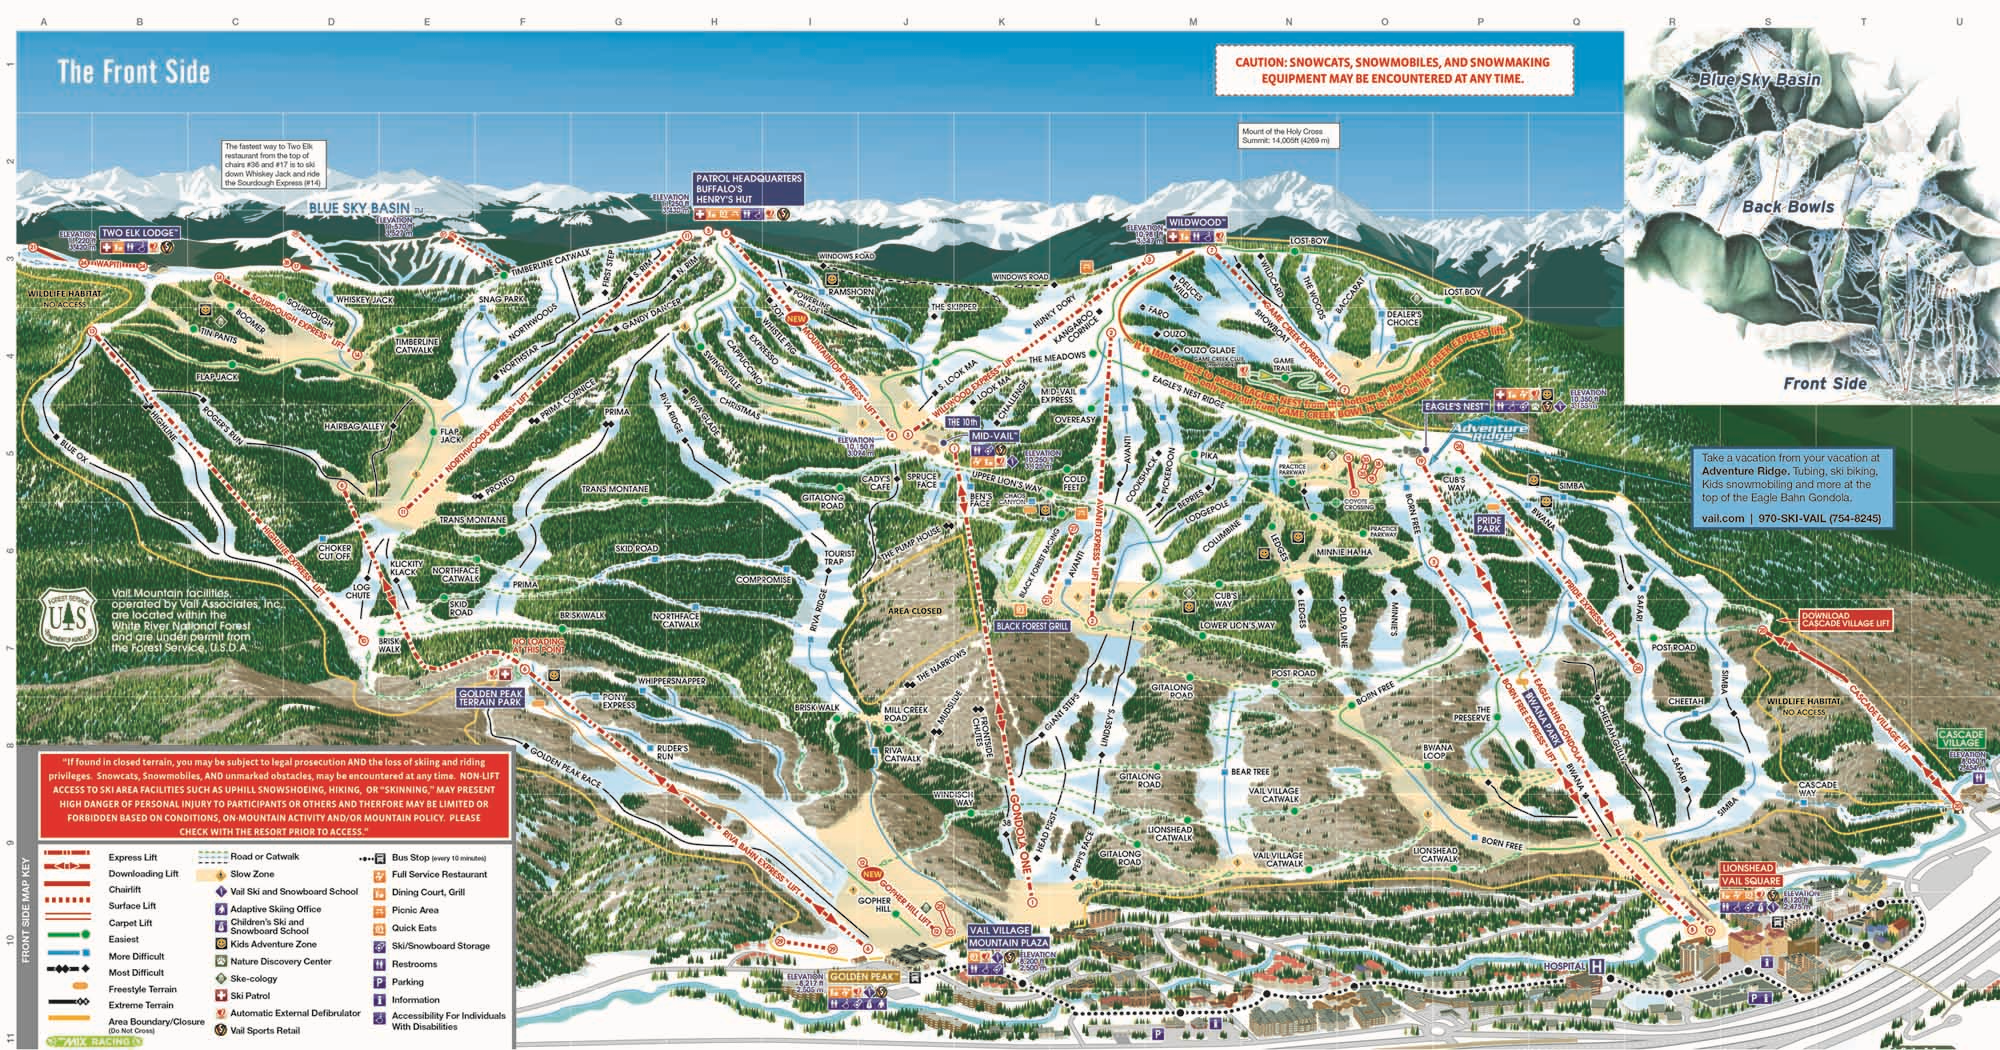 Conditions Report from Vail, CO: Nearly 500 Acres Now Open